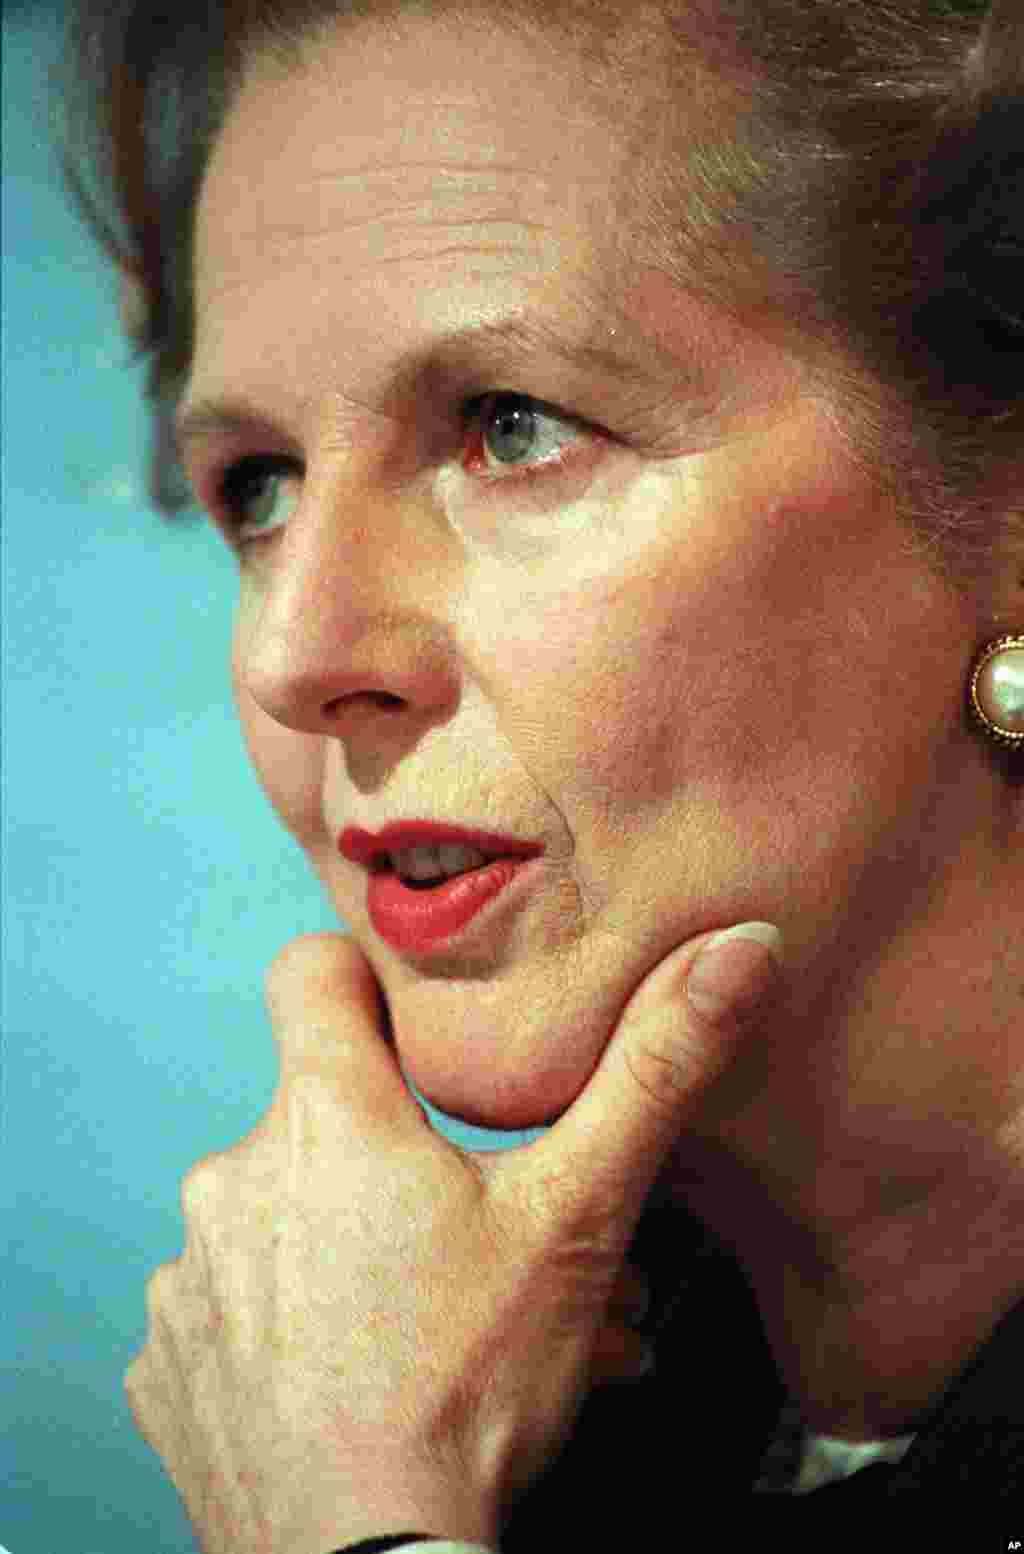 Then Prime Minister Margaret Thatcher took a moment for thought during a press conference in central London, June 10, 1987.